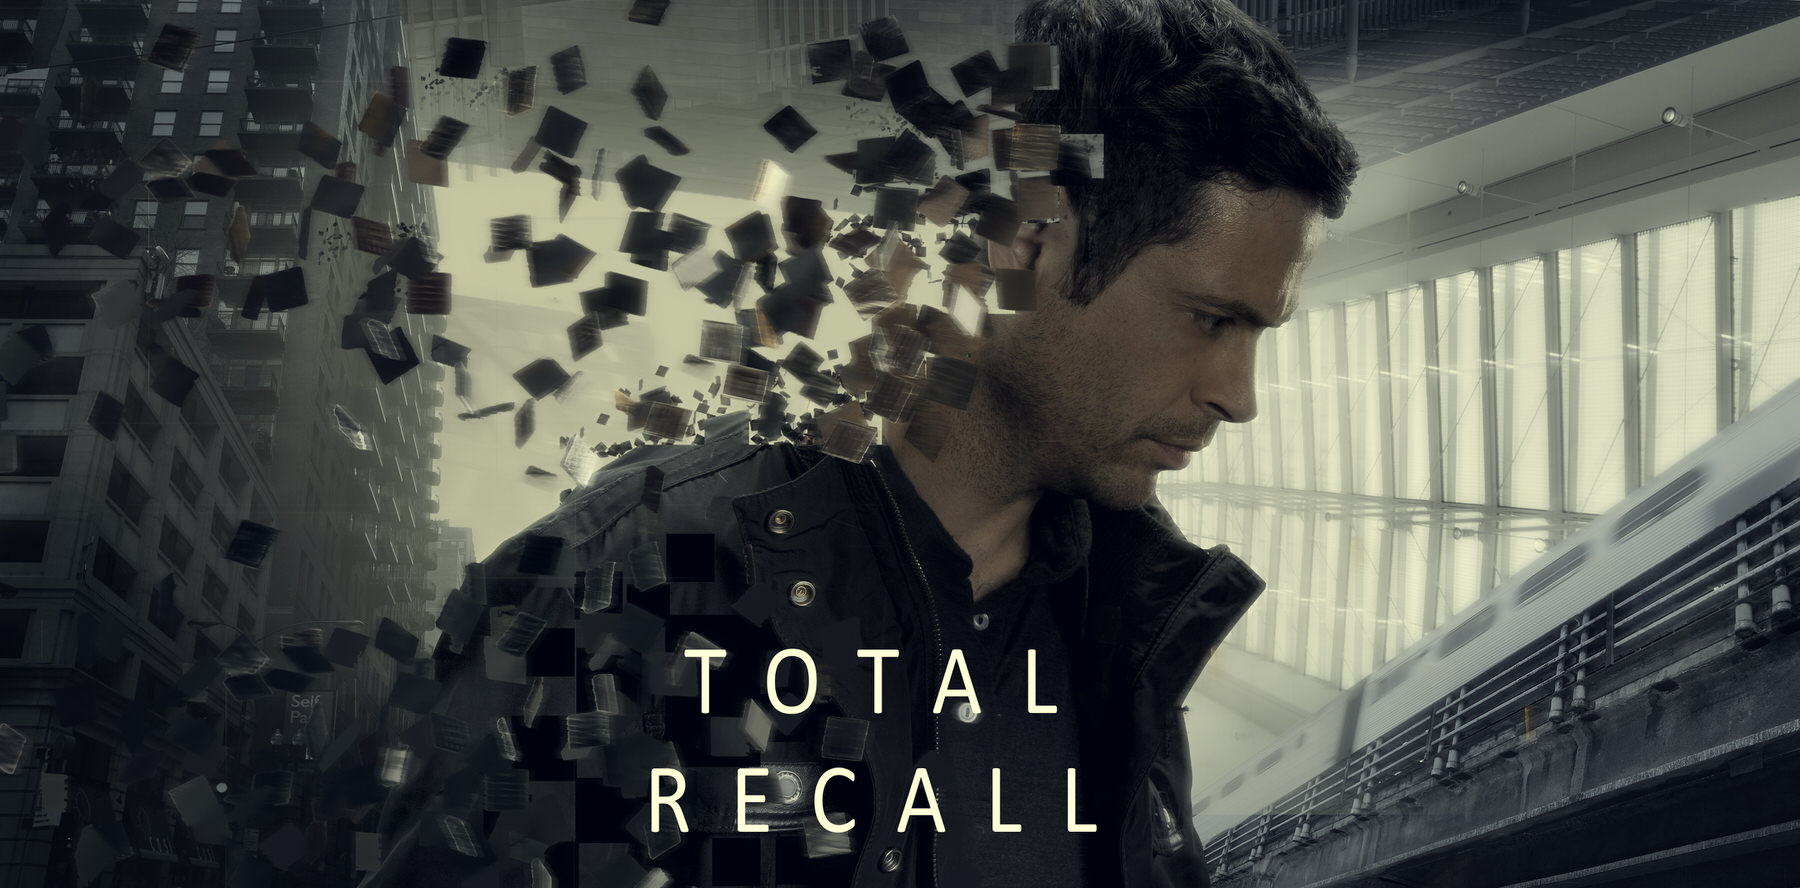 http://phlearn.com/wp-content/uploads/2012/07/Total-Recall.jpg